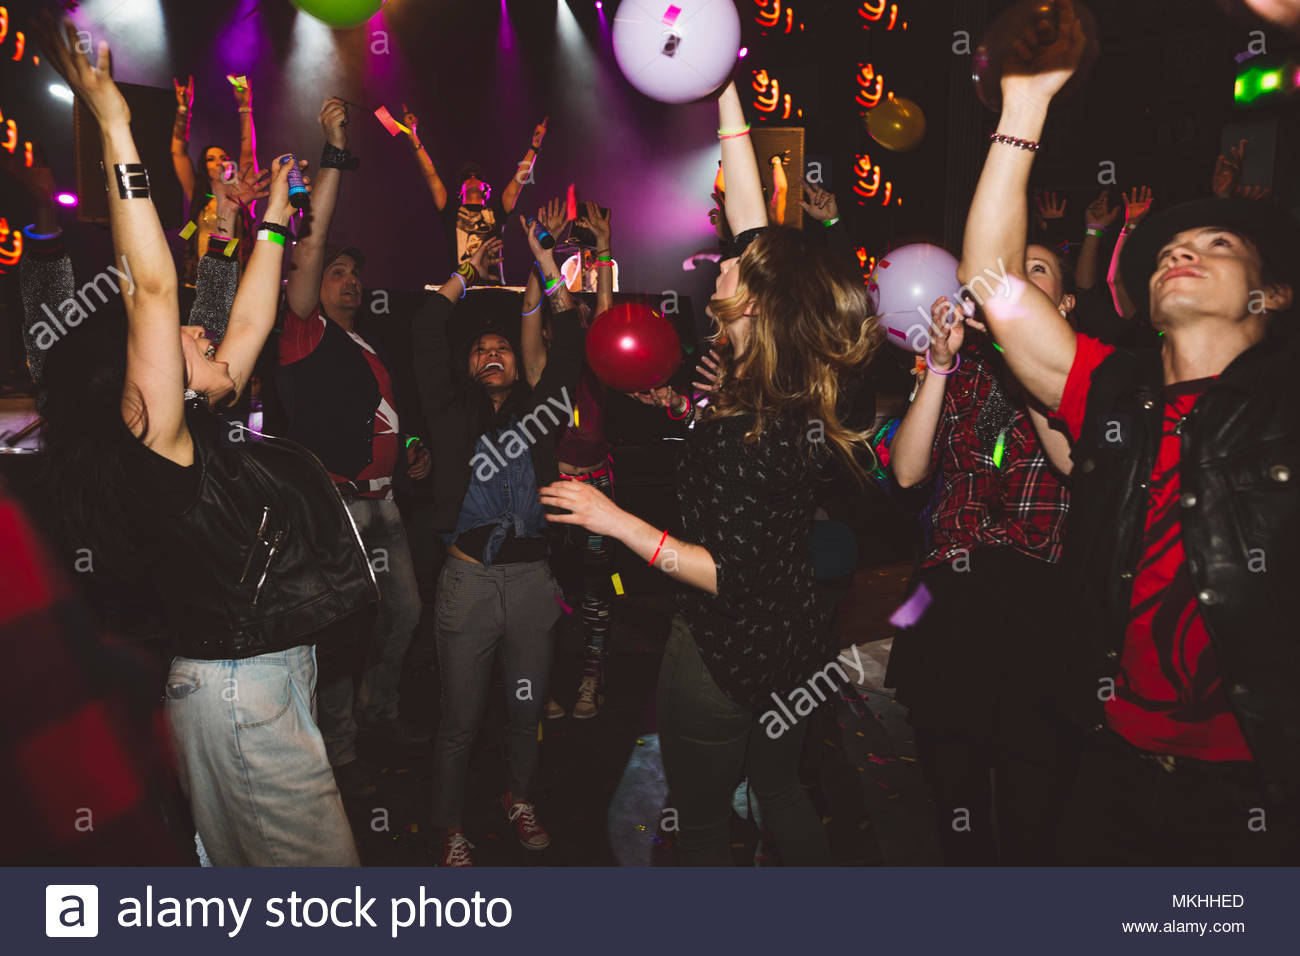 Milennials dancing and partying in nightclub - Stock Image